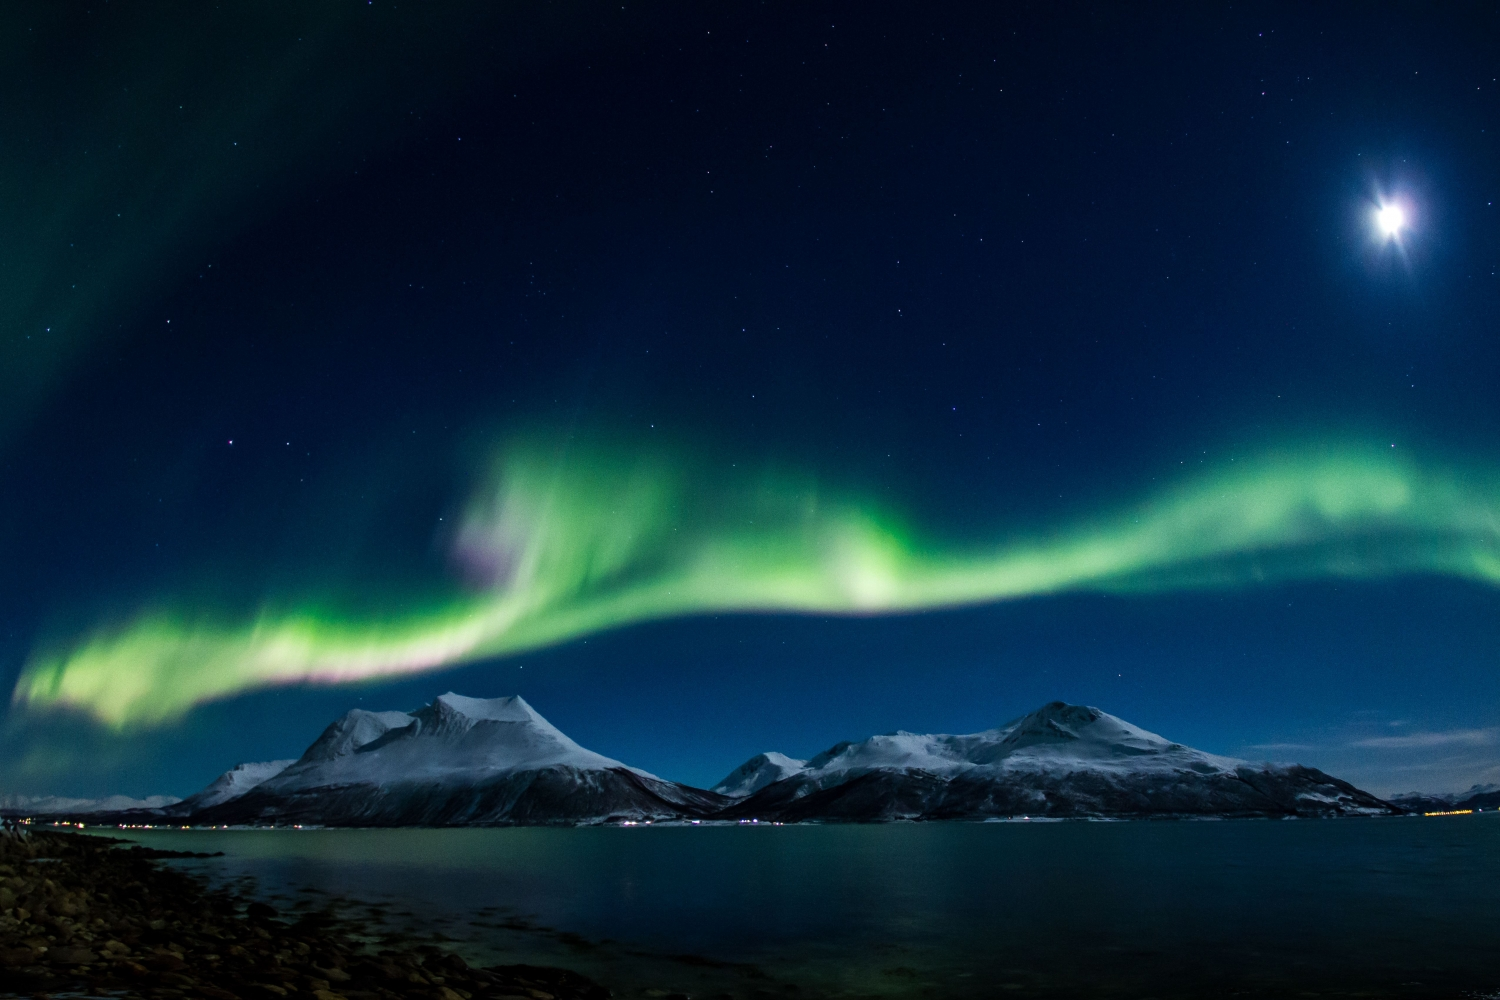 the northern lights over mountains